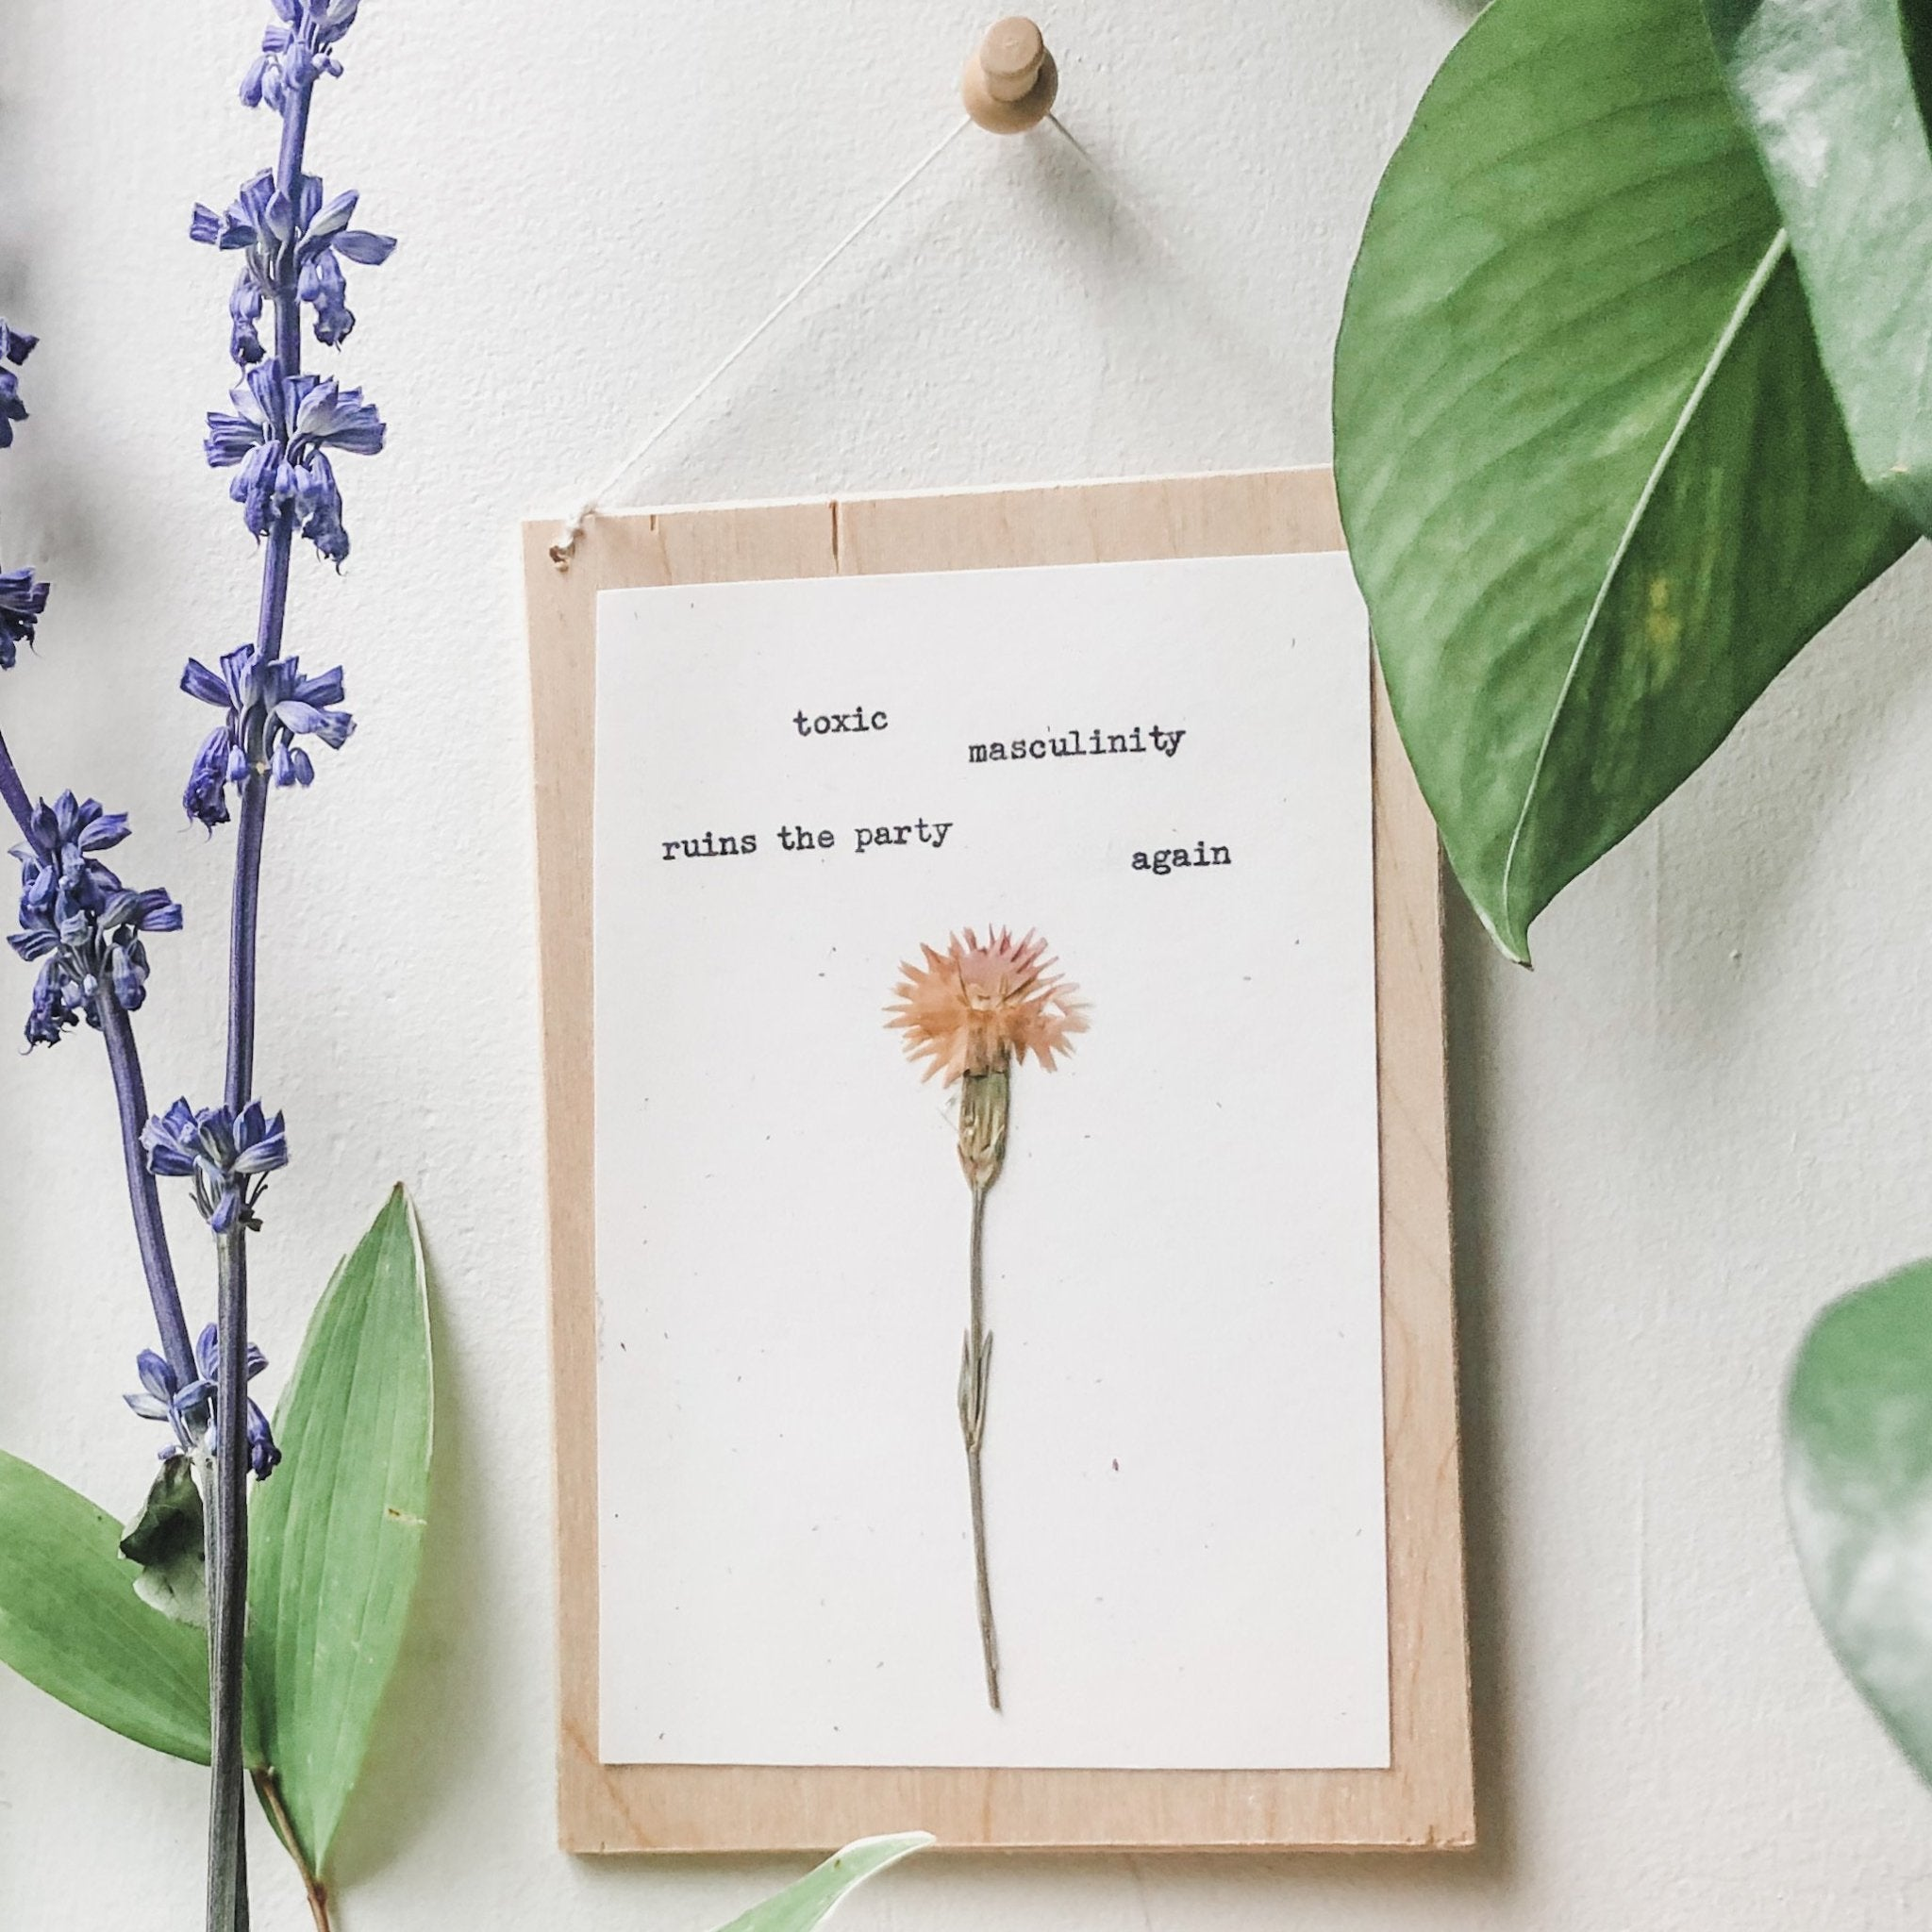 toxic masculinity ruins the party again quote typed in typewriter font on white paper, mounted on birch wood and paired with a pressed flower. handmade décor by flora & phrase